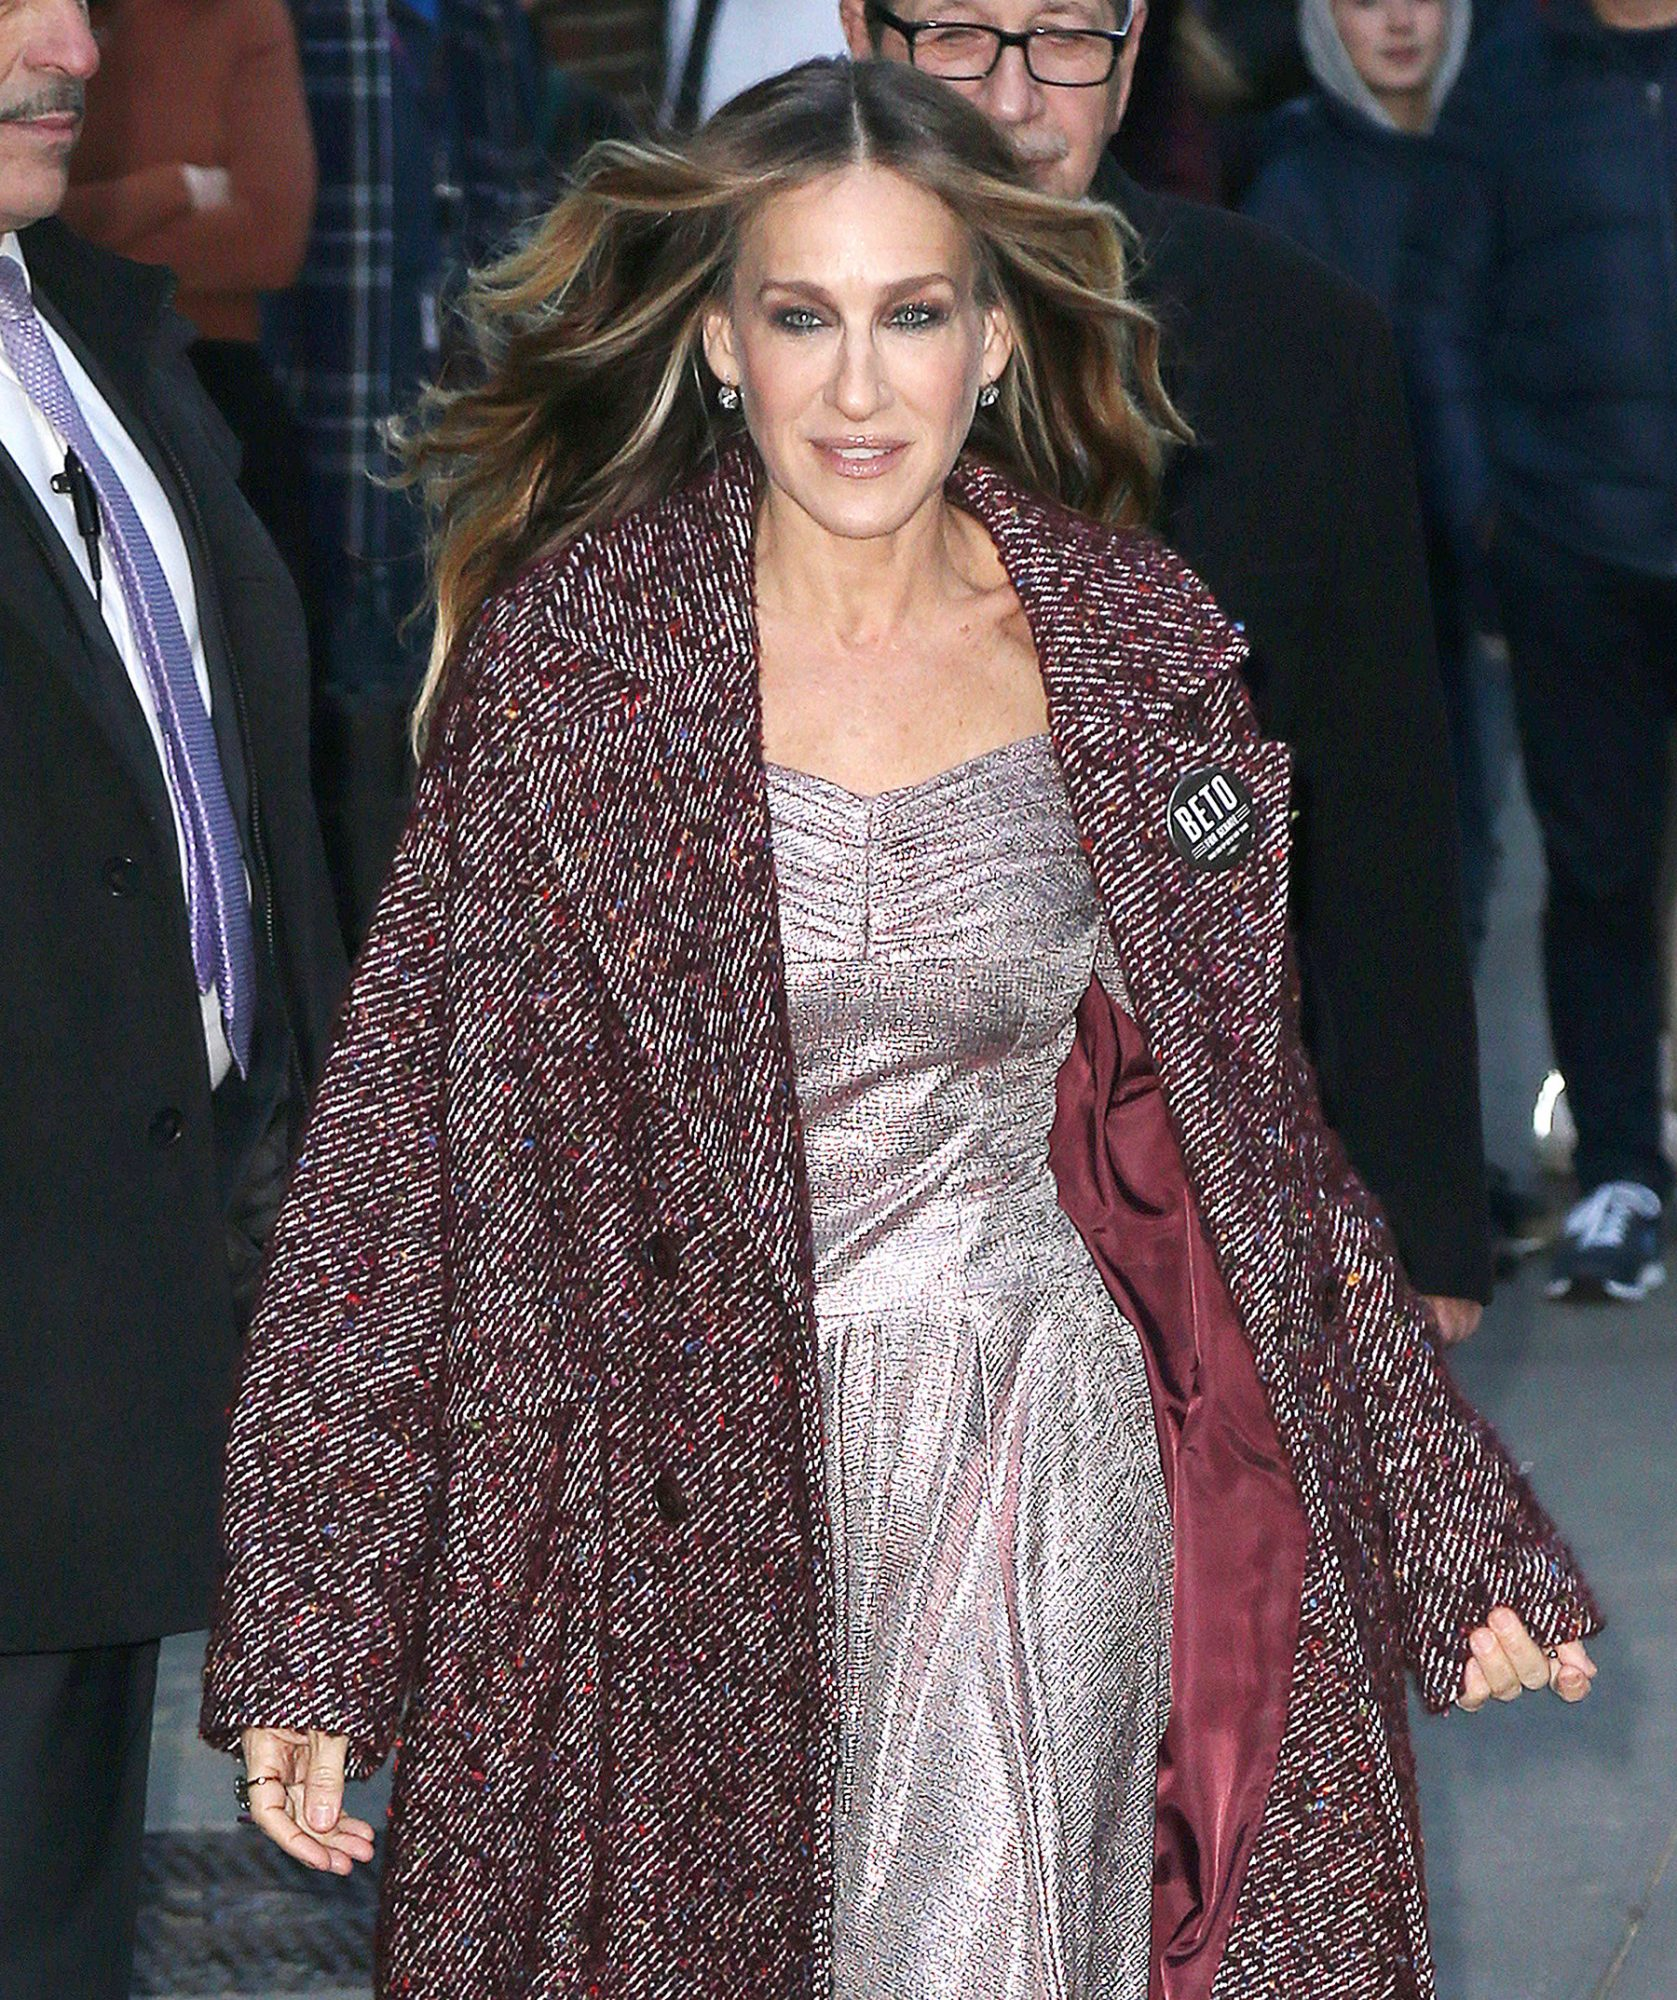 Sarah Jessica Parker Visits The Late Show With Stephen Colbert In New York